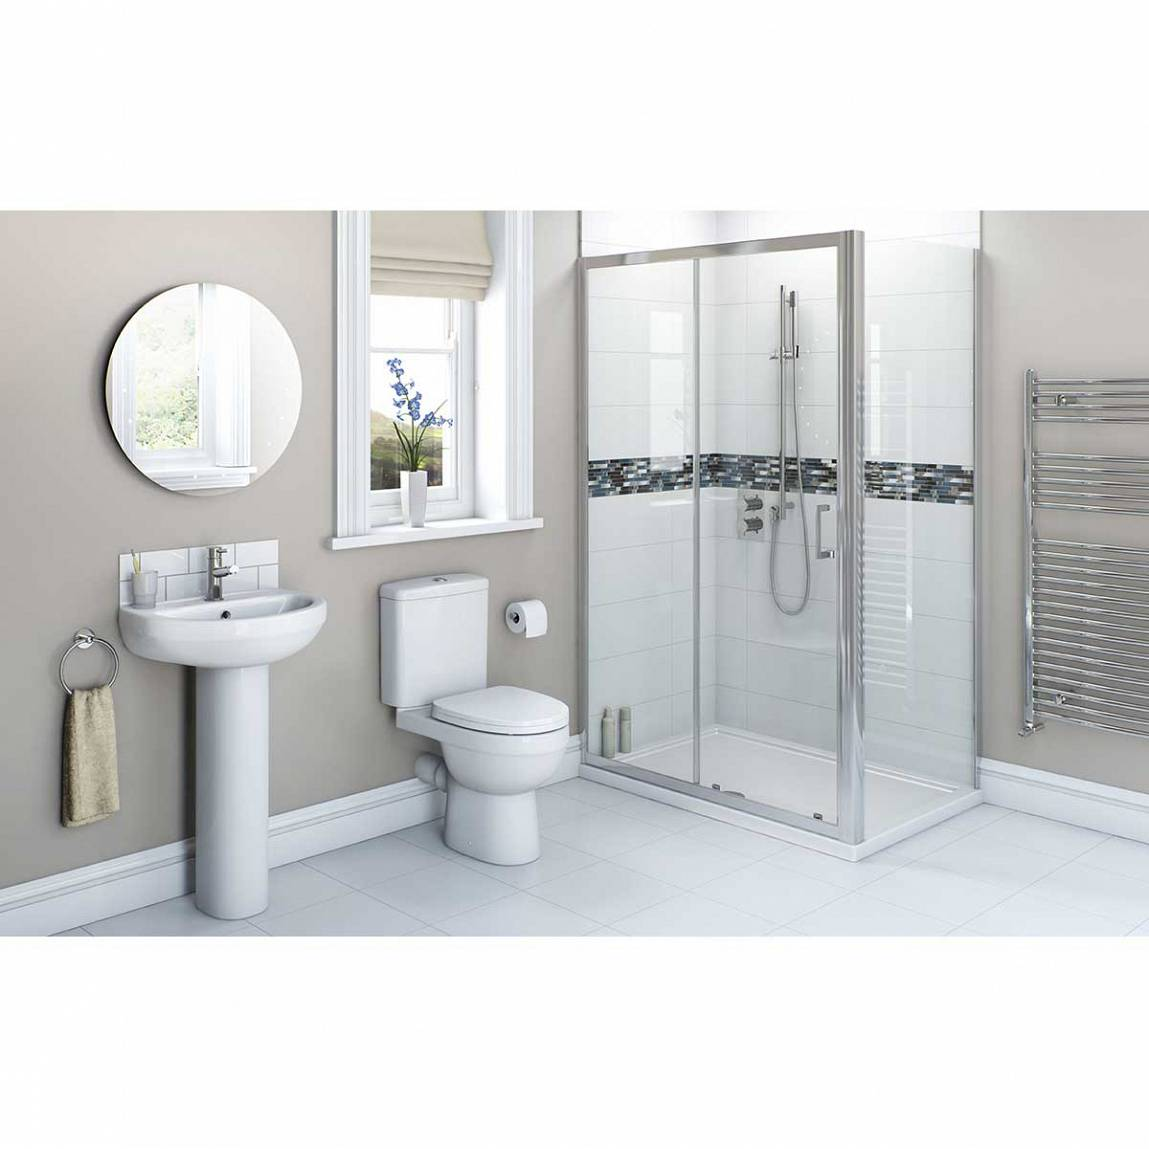 Image of Energy Bathroom set with 1100x800 Sliding Enclosure